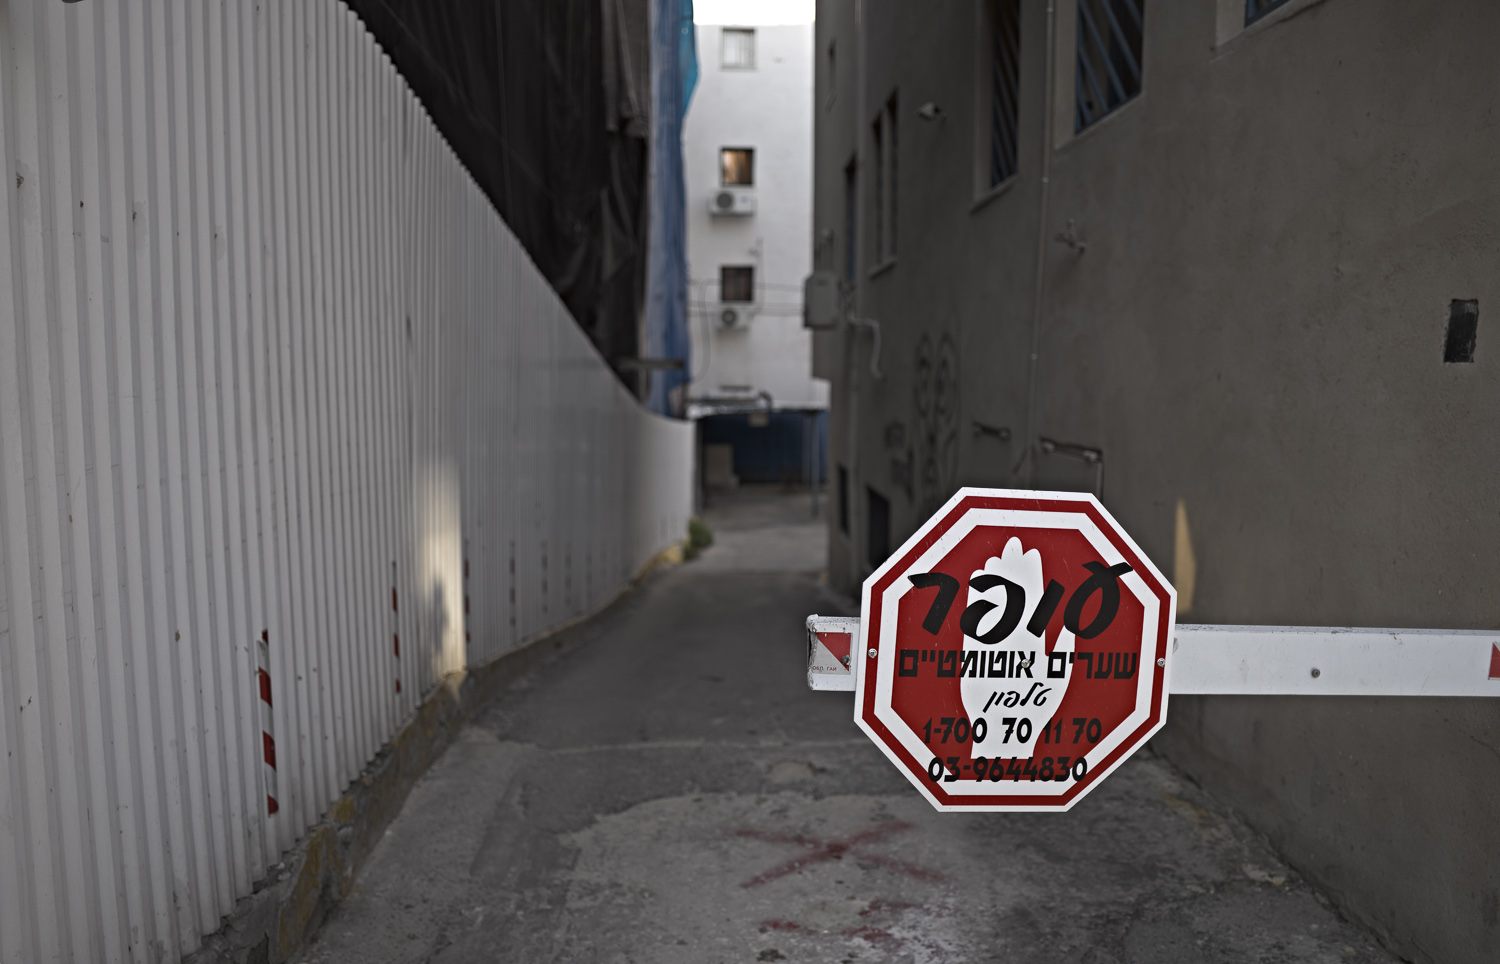 No-entry barrier - Tel Aviv, 2011